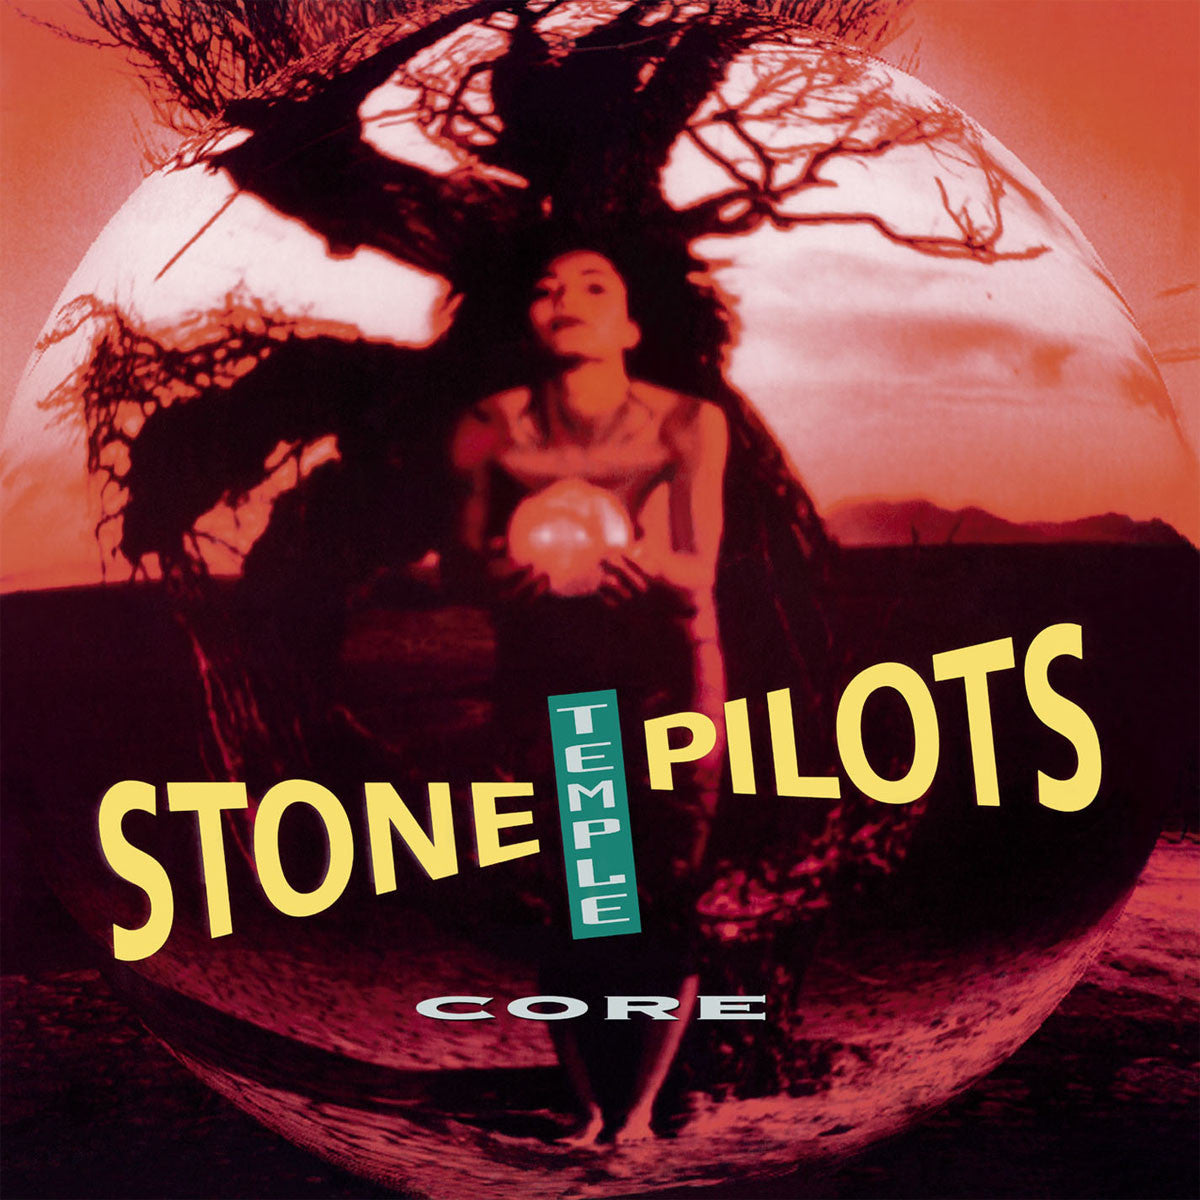 Stone Temple Pilots: Core (Colored Vinyl) LP (Record Store Day)